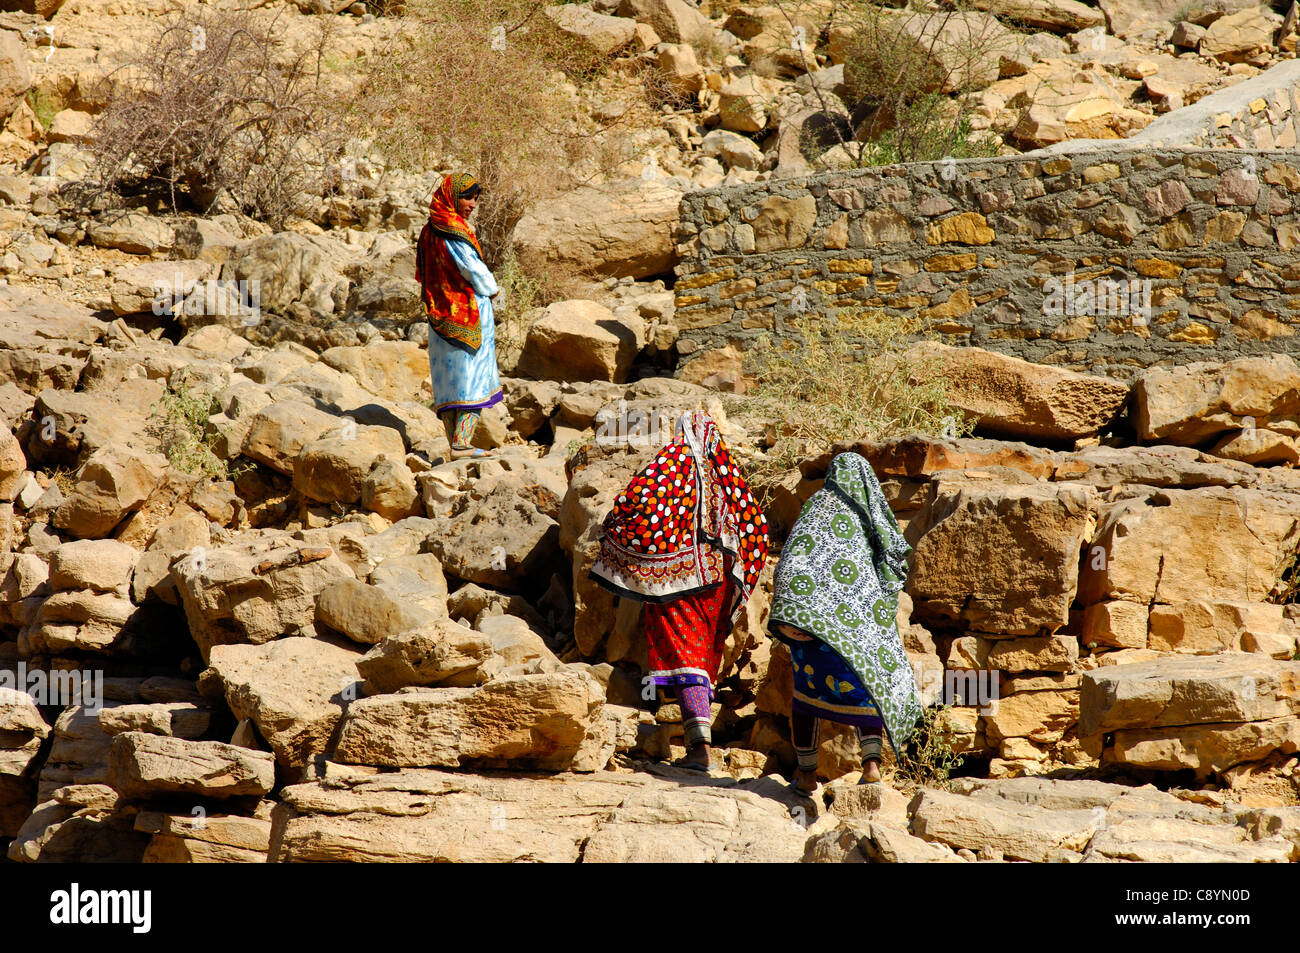 Omani women in colorful garments on a rocky trail the way to their mountain village in the Hajjar Mountains, Sultanate - Stock Image